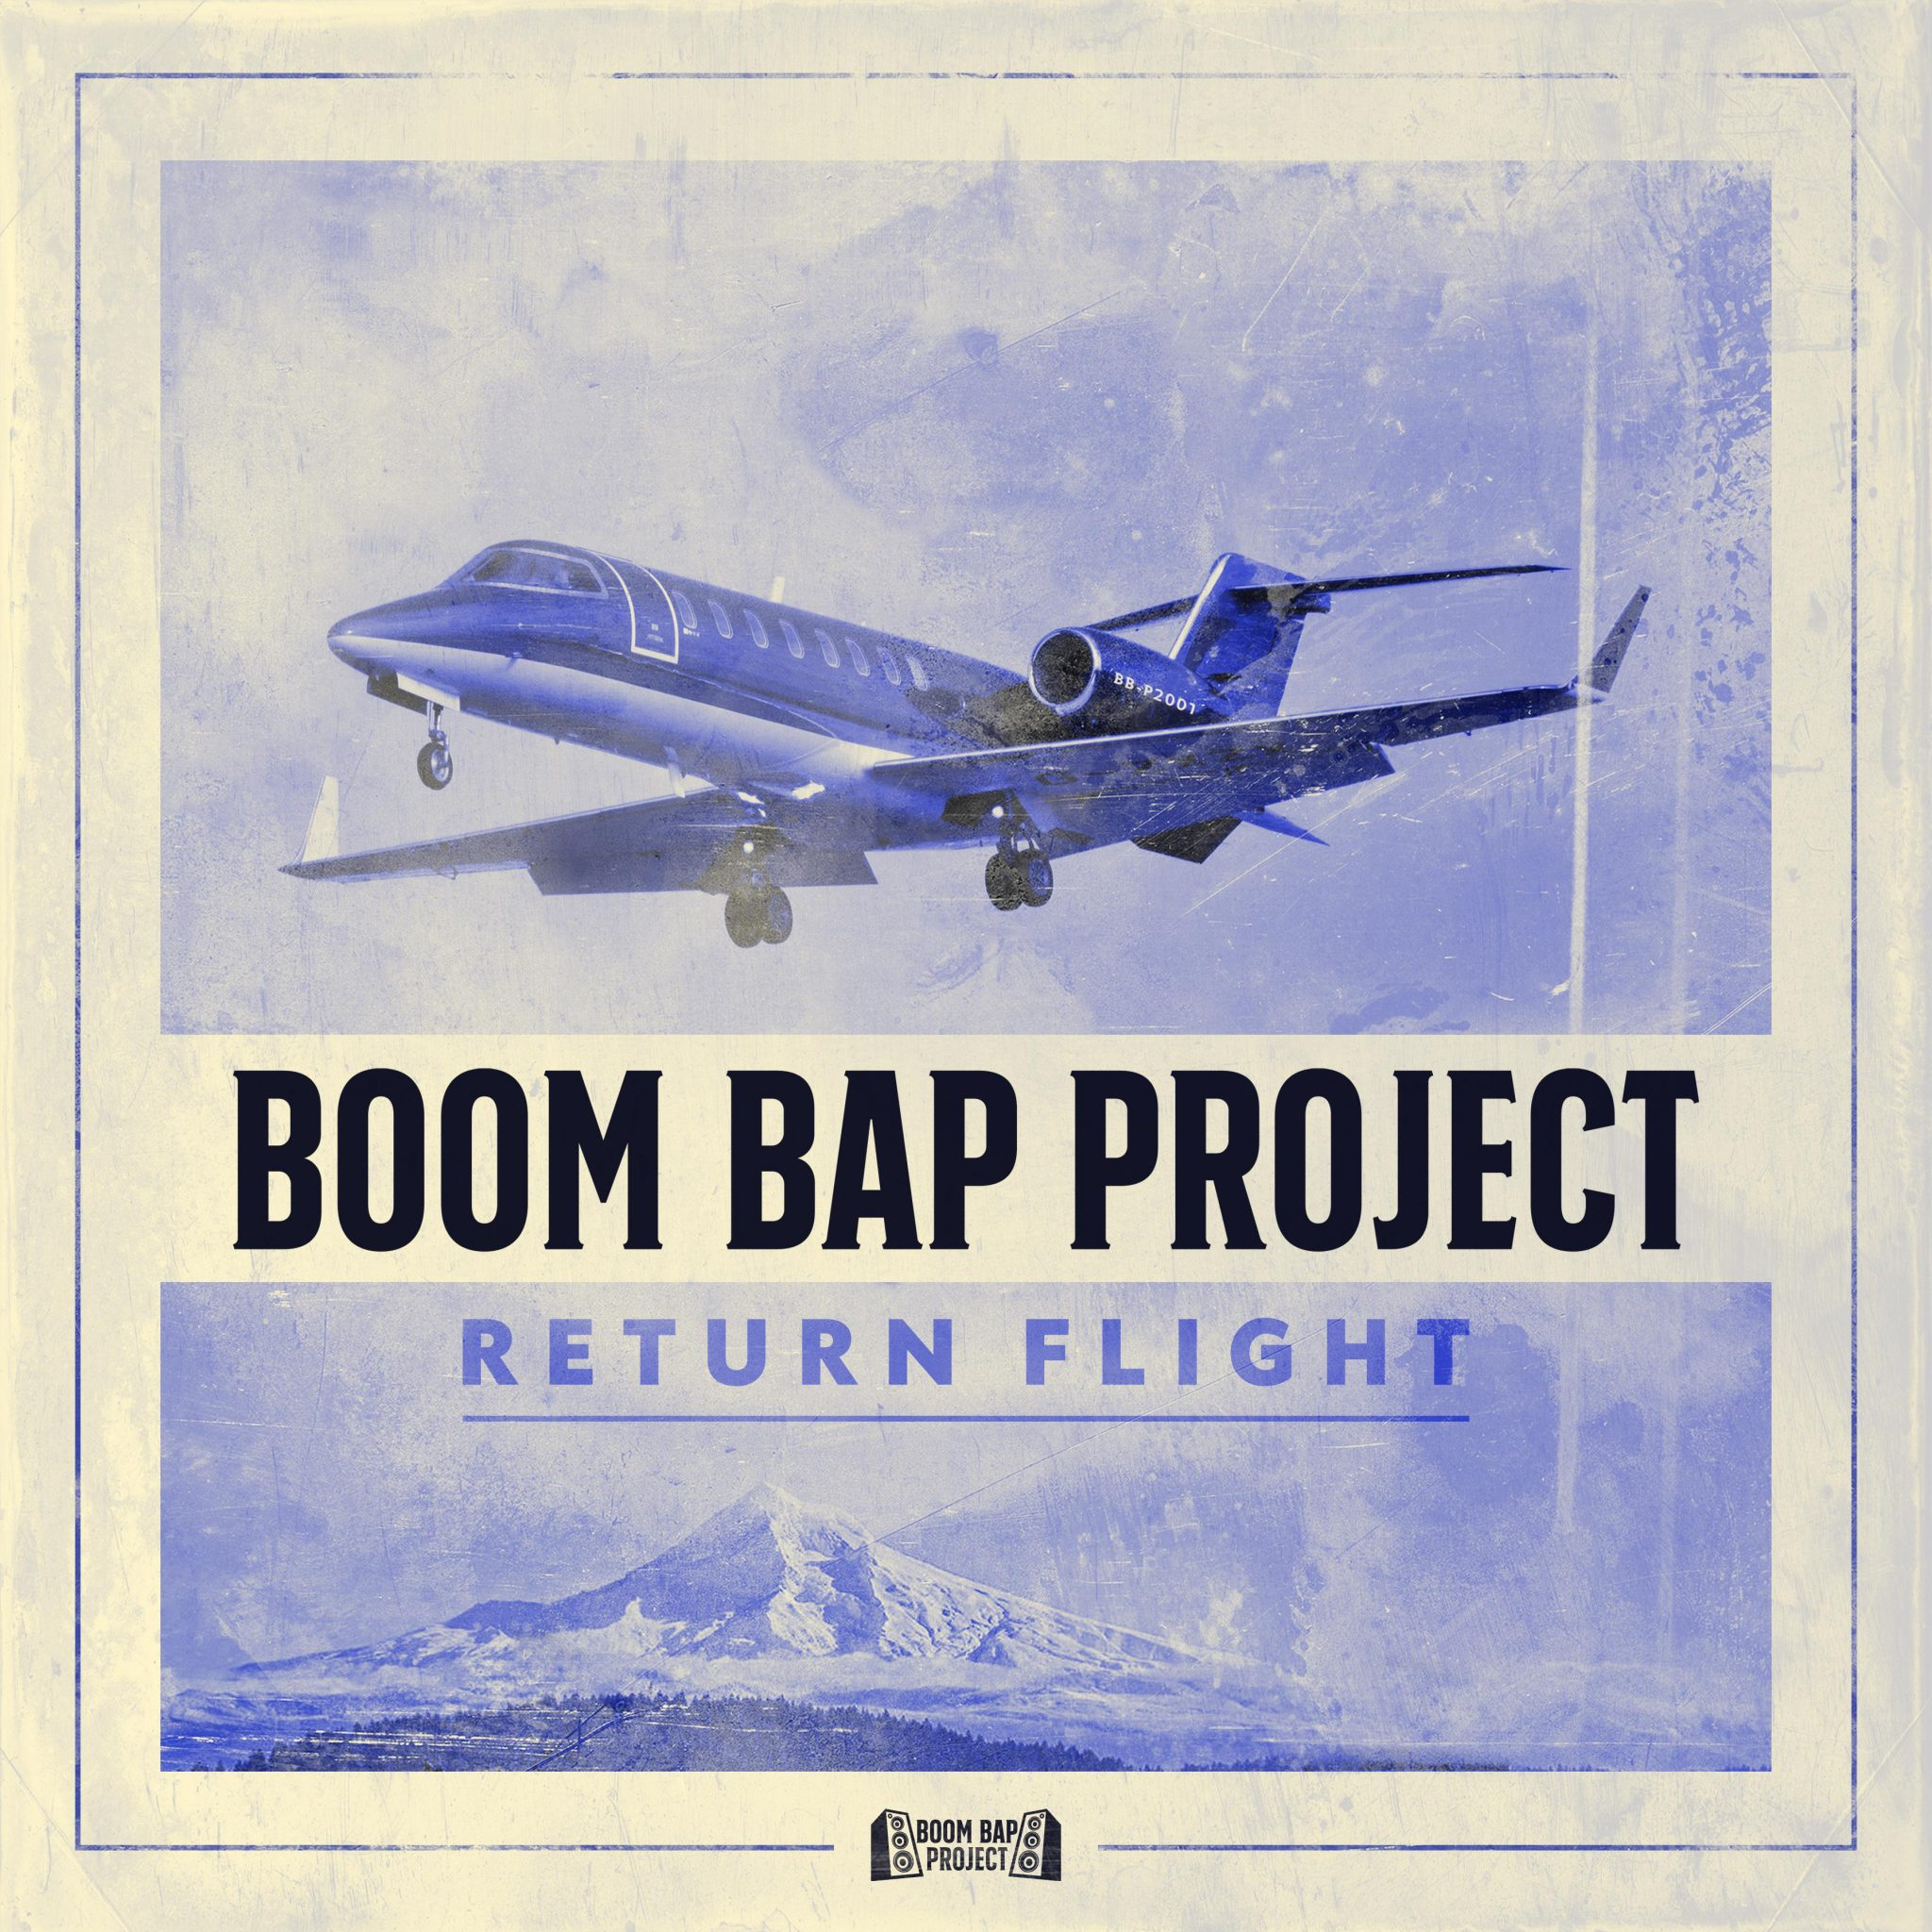 """Boom Bap Project album """"Return Flight"""" cover pictured here where a commercial airplane is seen flying past Mount Rainier."""